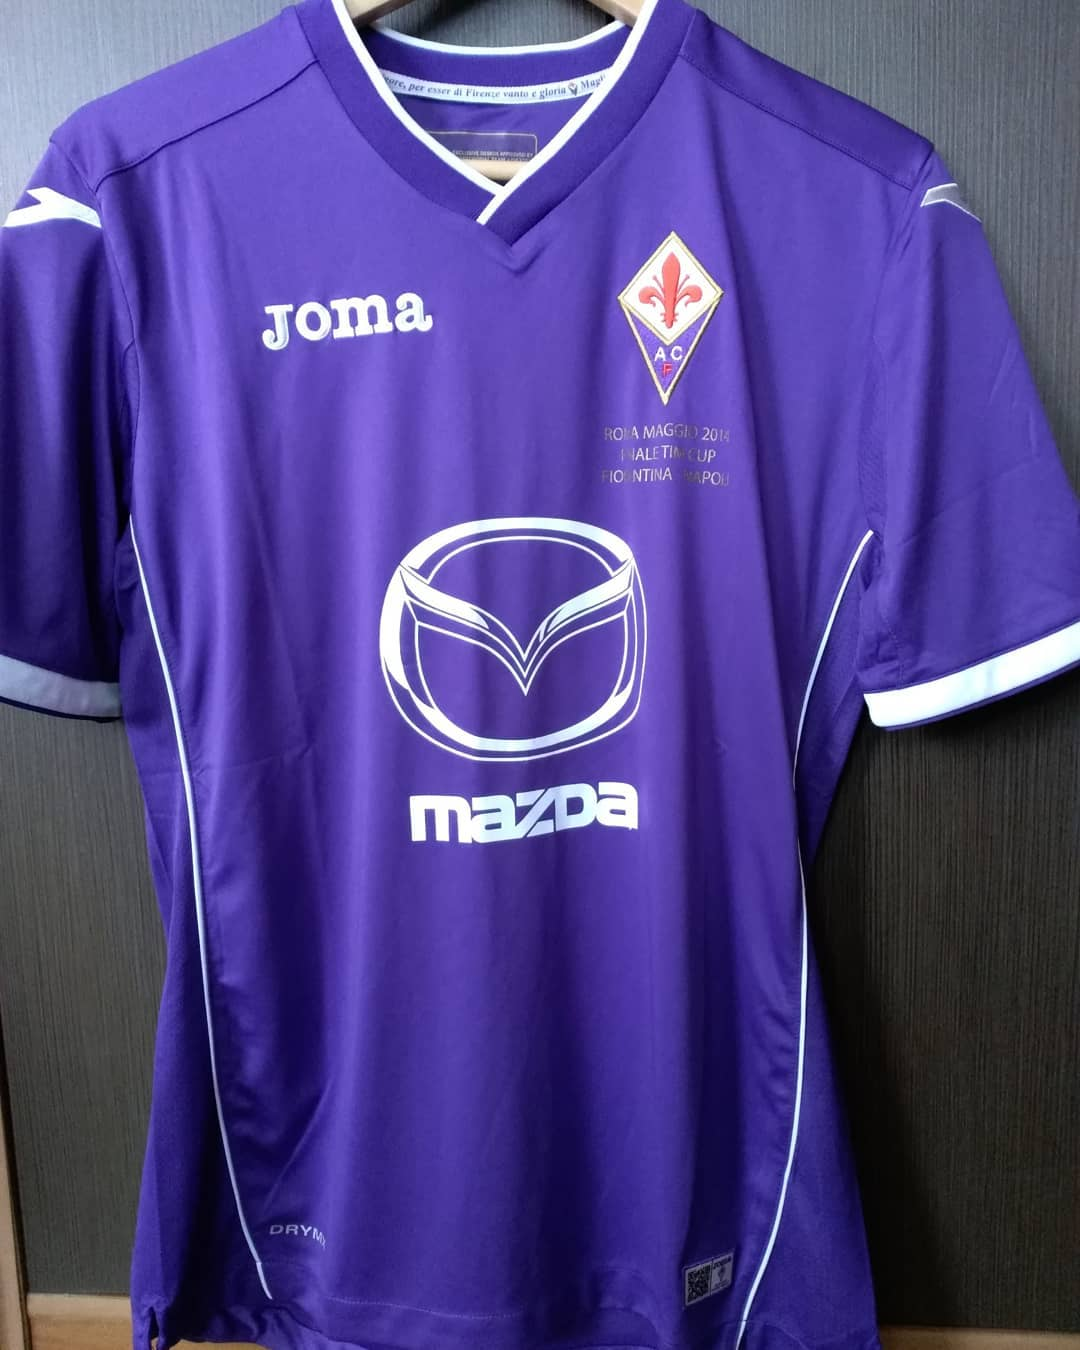 Fiorentina Home 2014 Cup Football Shirt. Club Footbal Shirts.